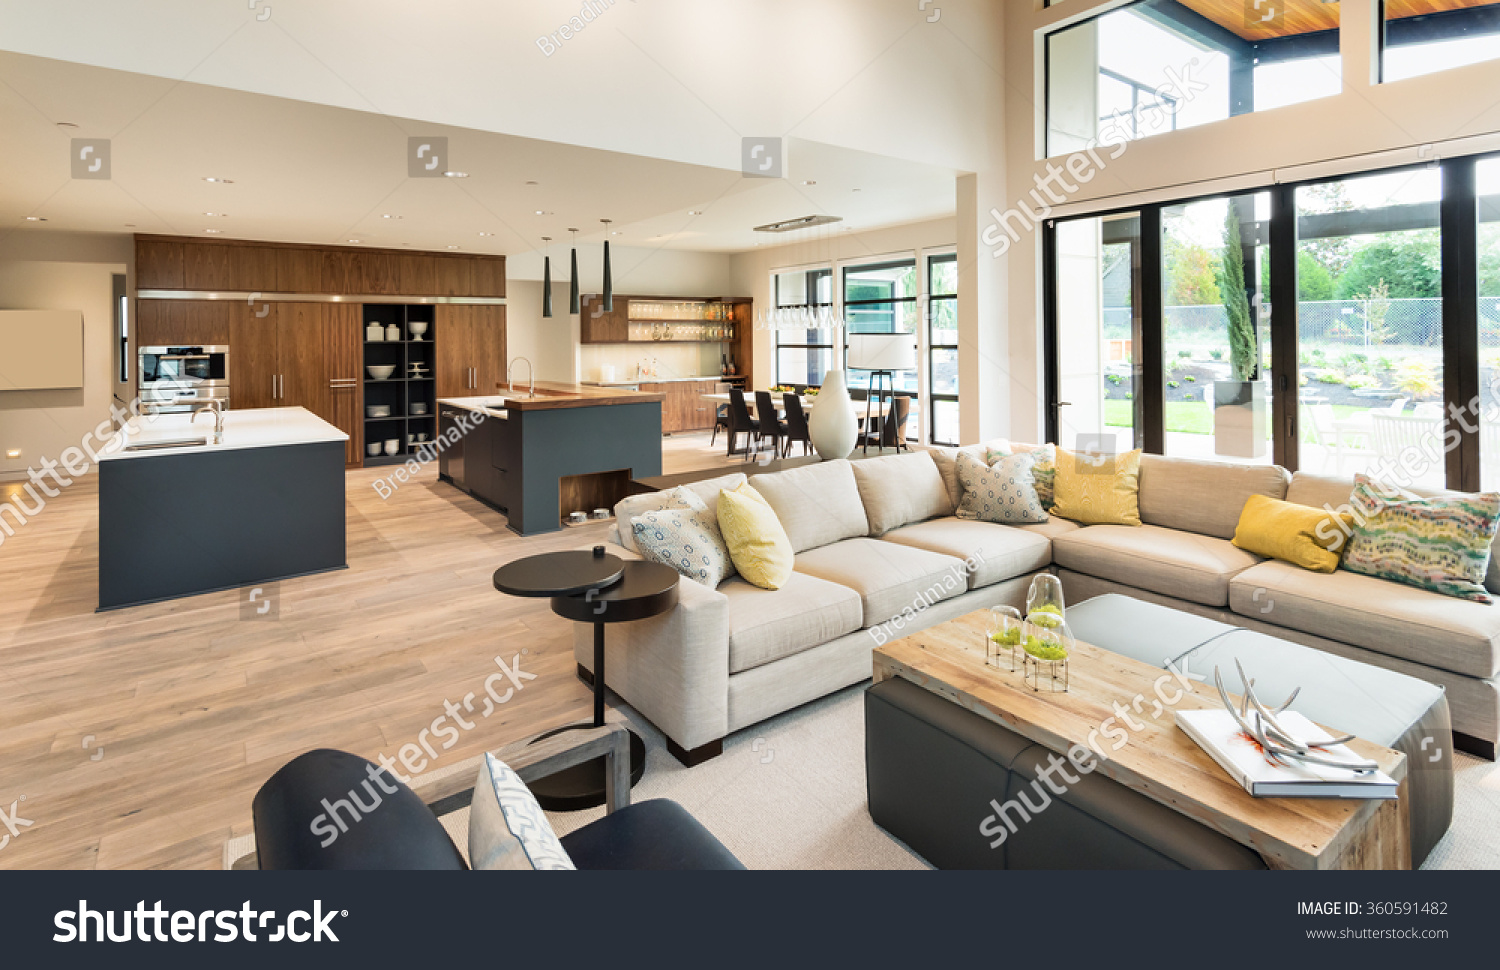 stock photo beautiful living room interior in new luxury home with view of kitchen home interior with hardwood 360591482